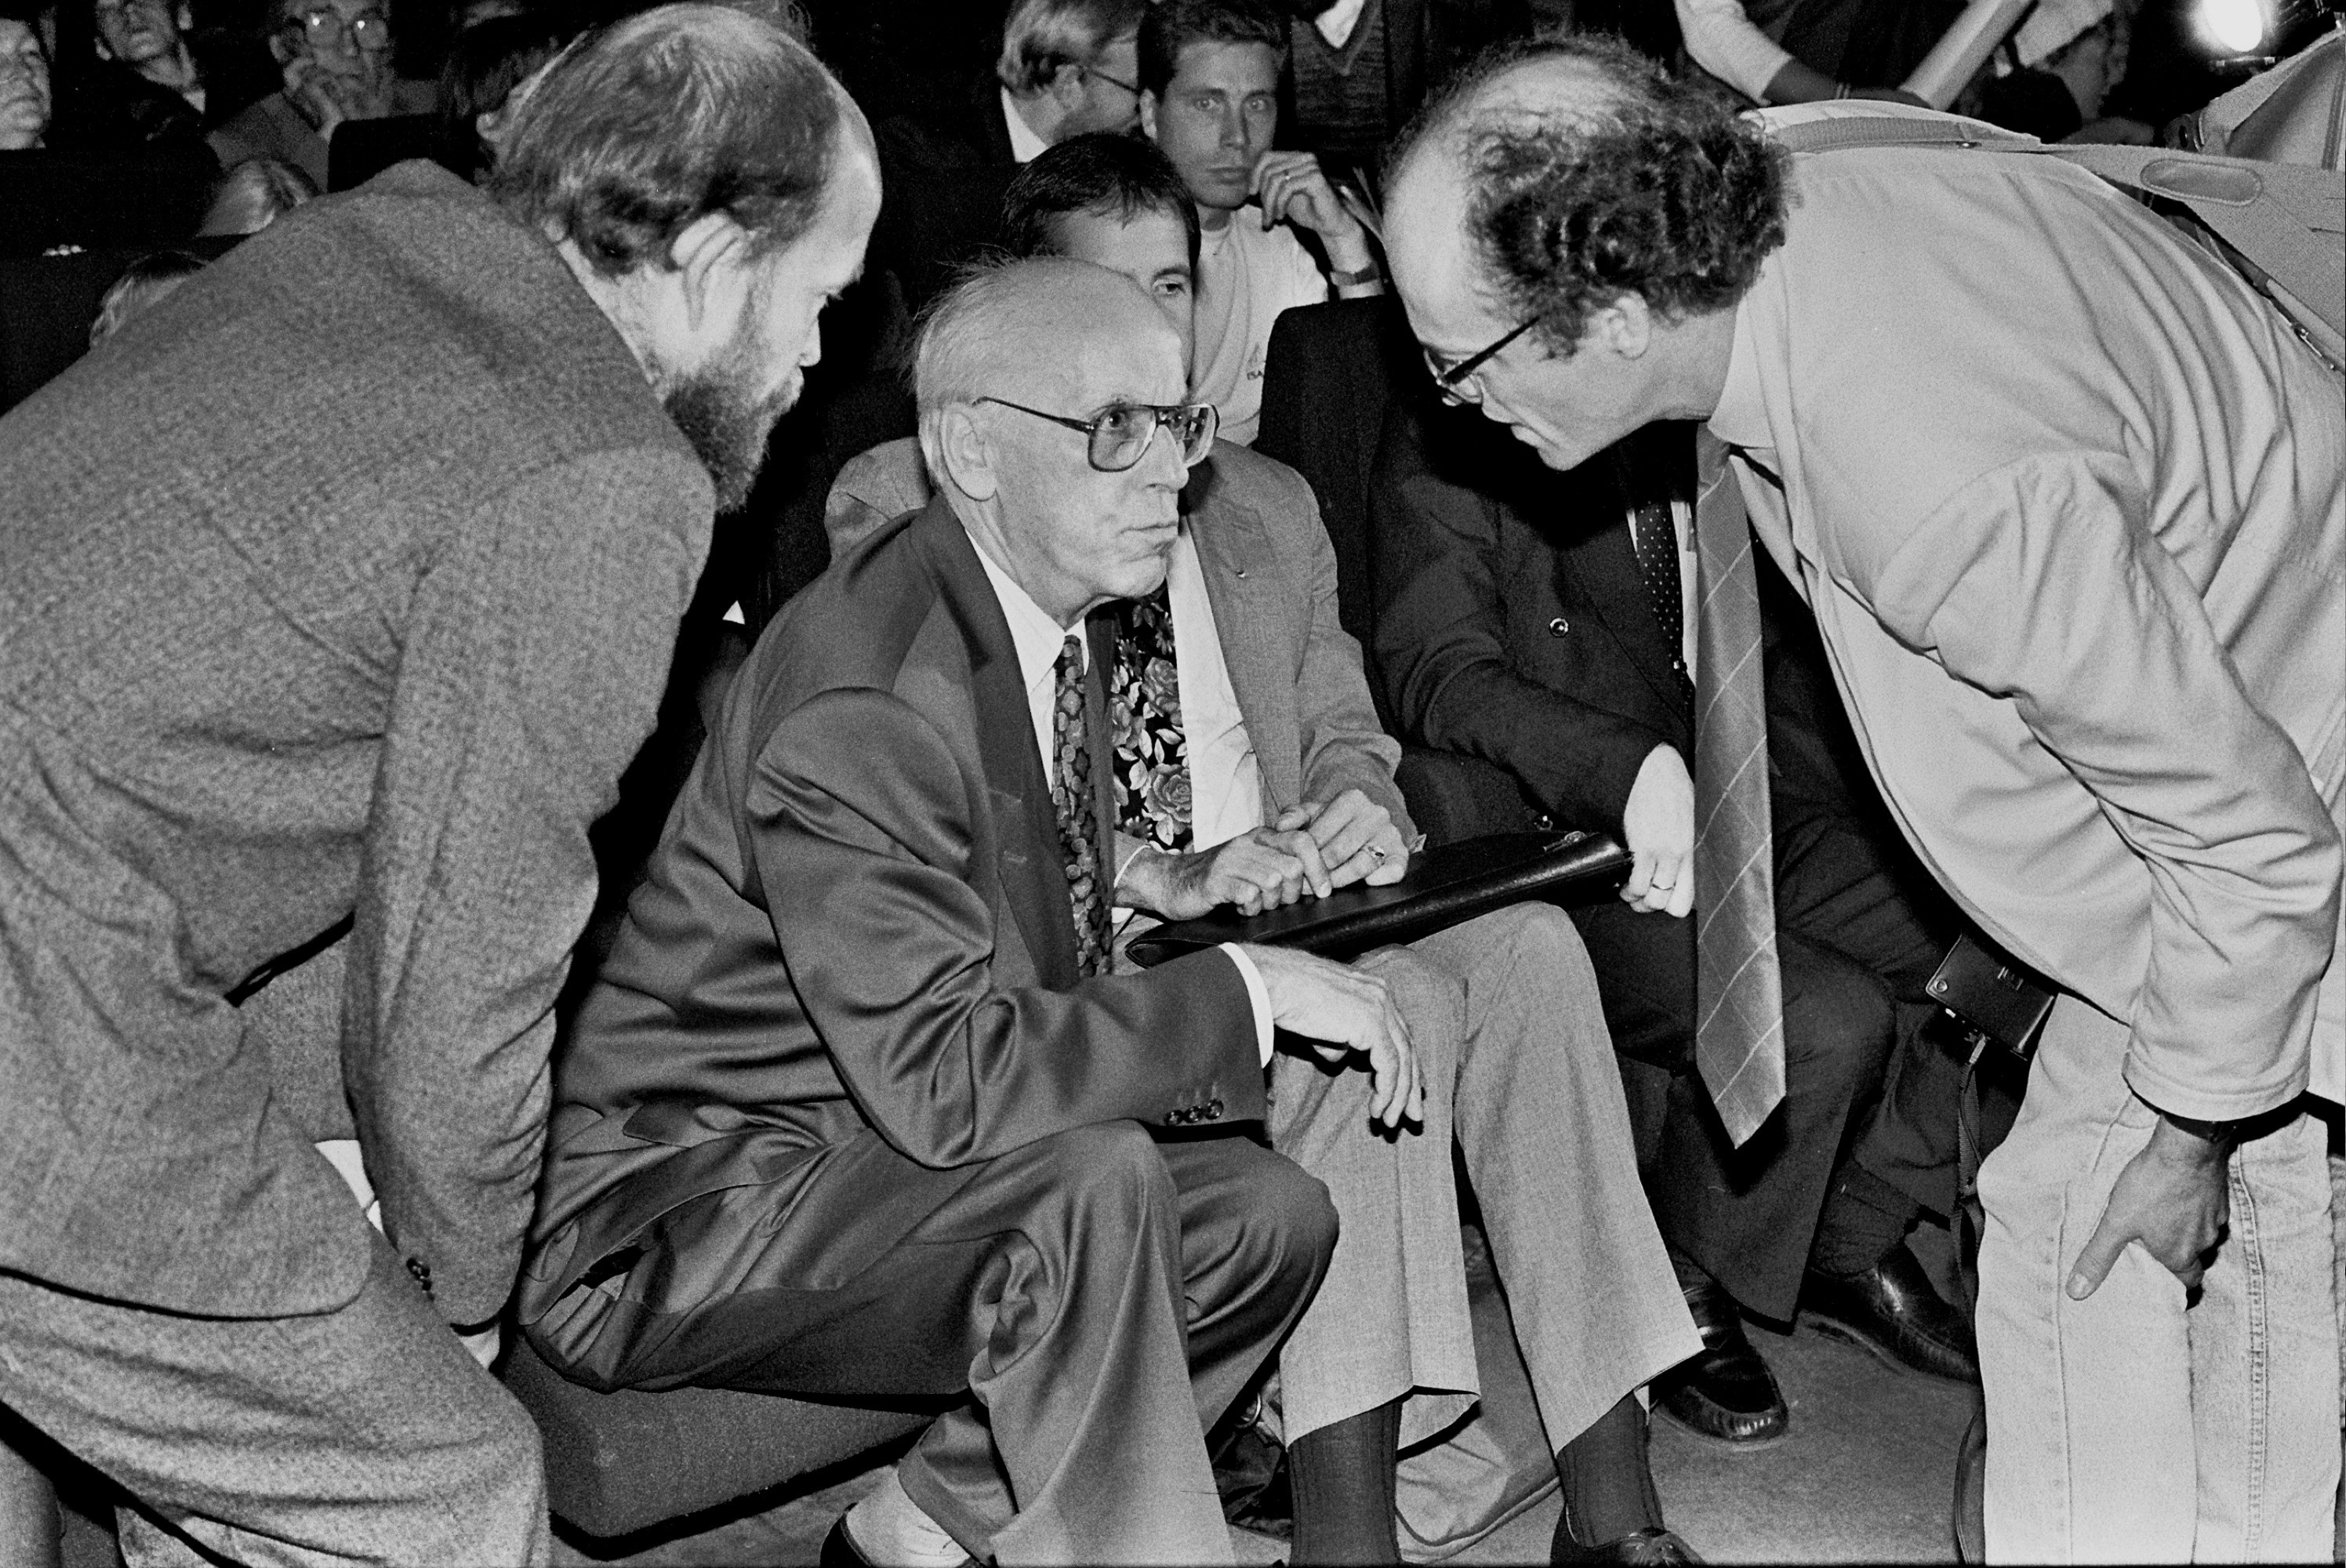 Lennart Meri with supporters at the Tallinn Linnahall during his presidential election campaign. Photo by Peeter Langovits, from the archive of the foreign ministry.